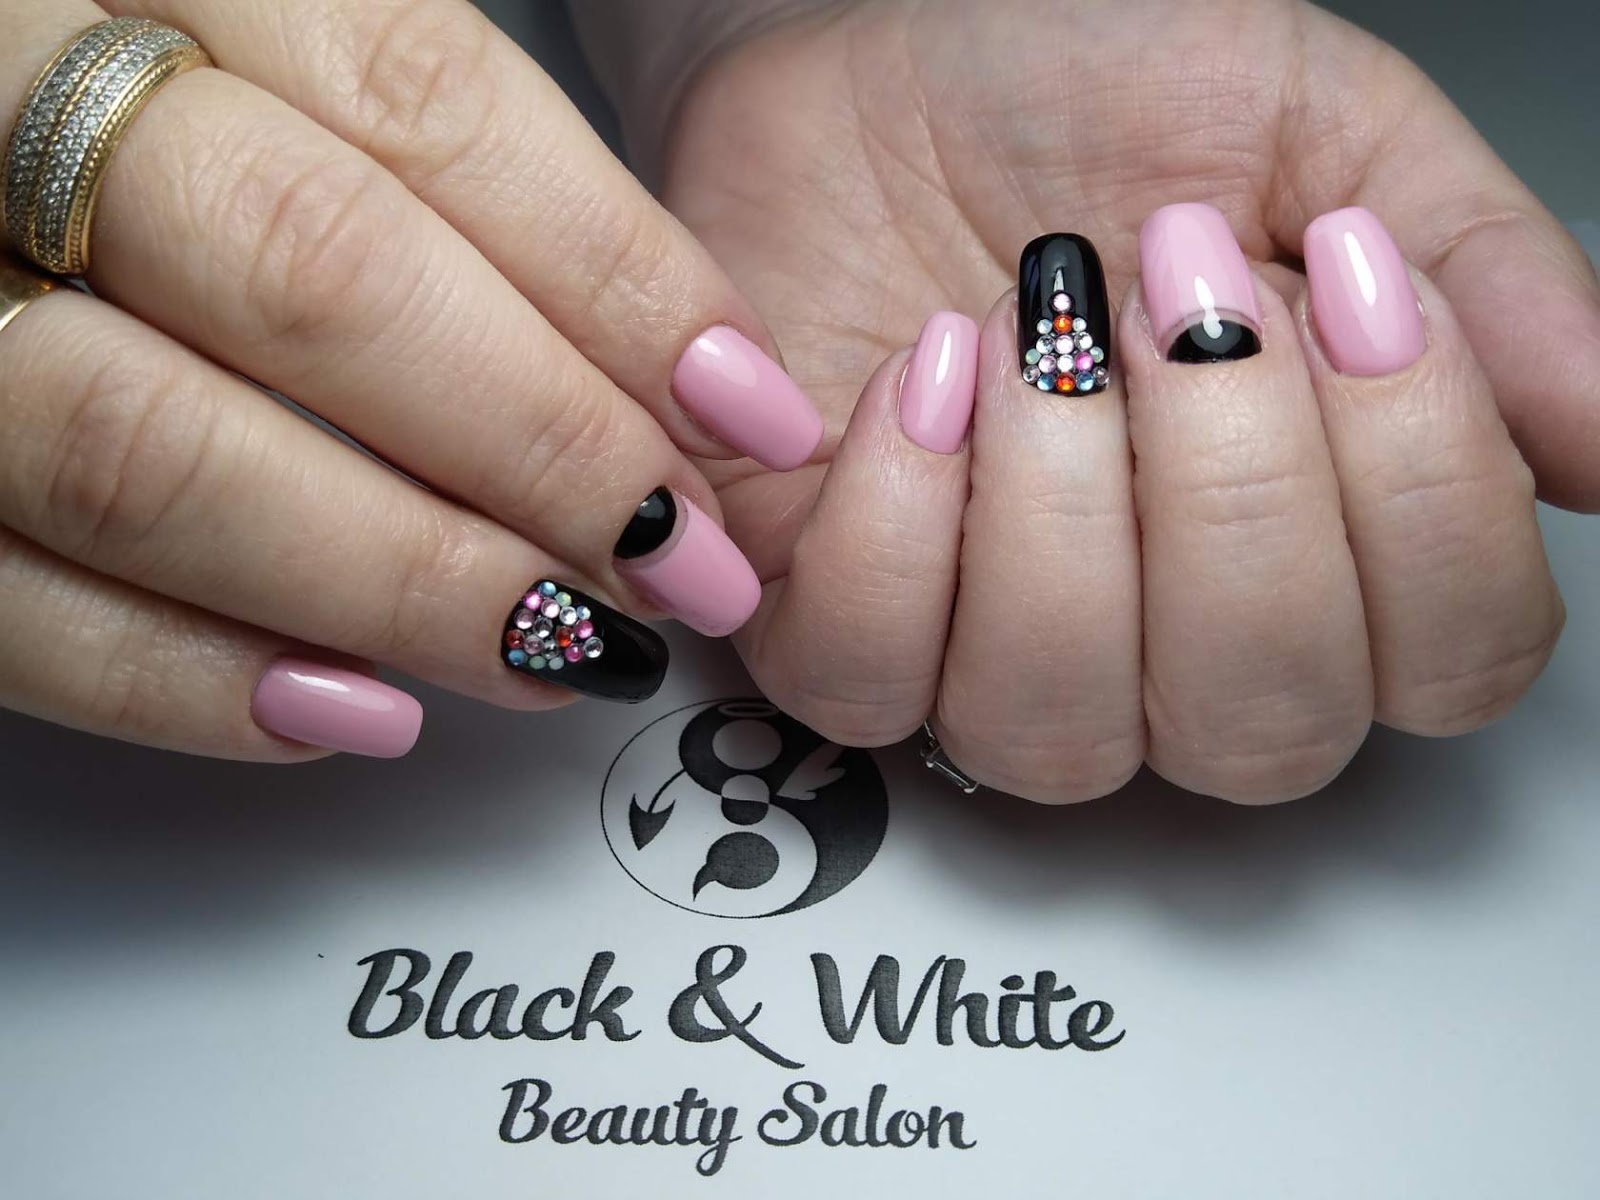 Black & White Nails Art Disign: Entity Nail Systems